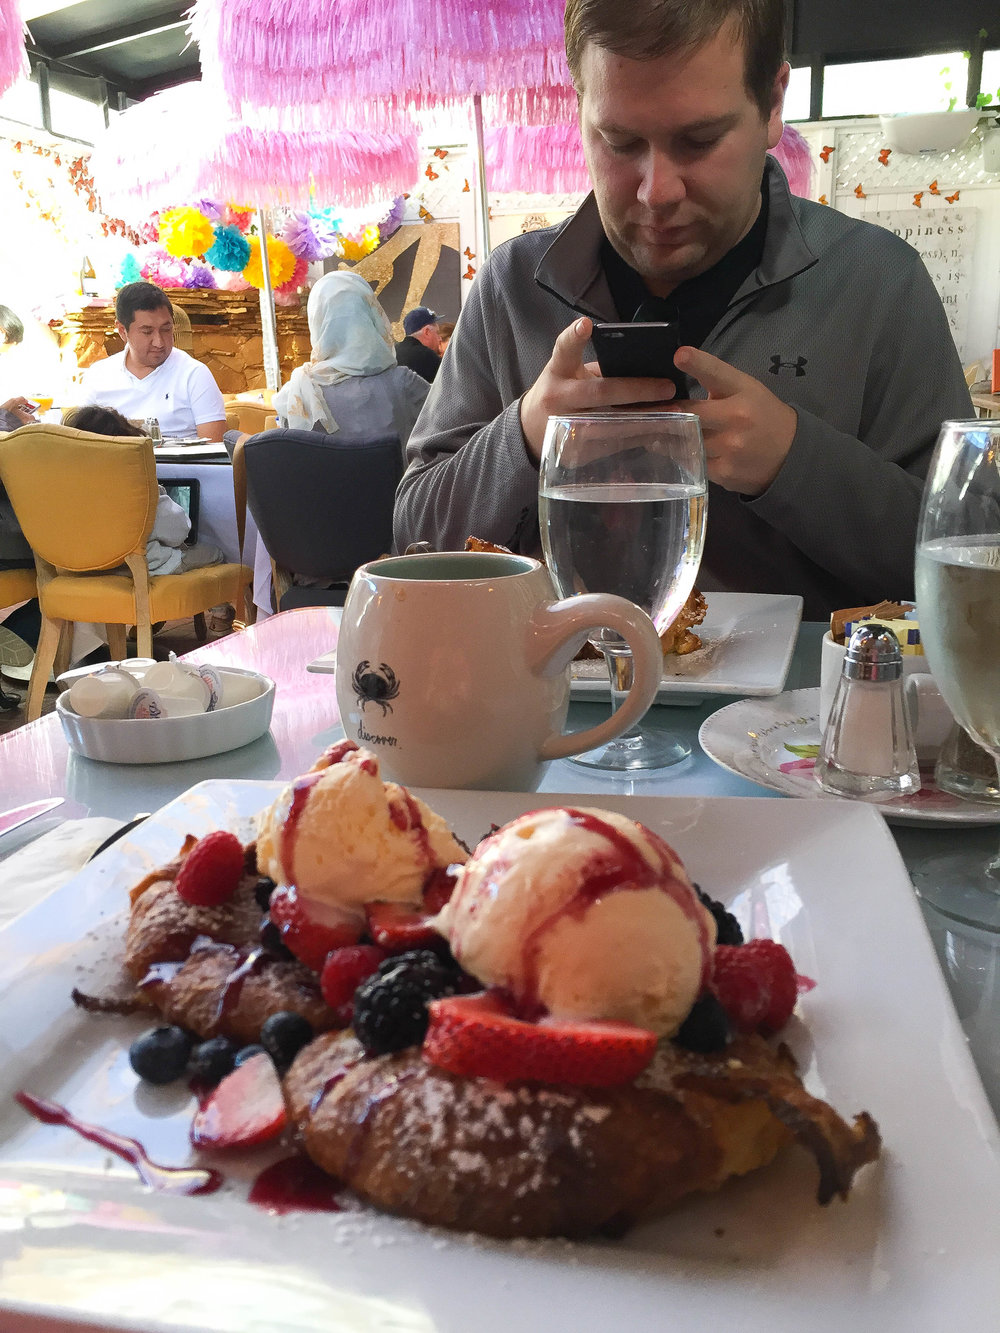 Polar Bear French Toast at 26 Beach - Best Brunch in Los Angeles